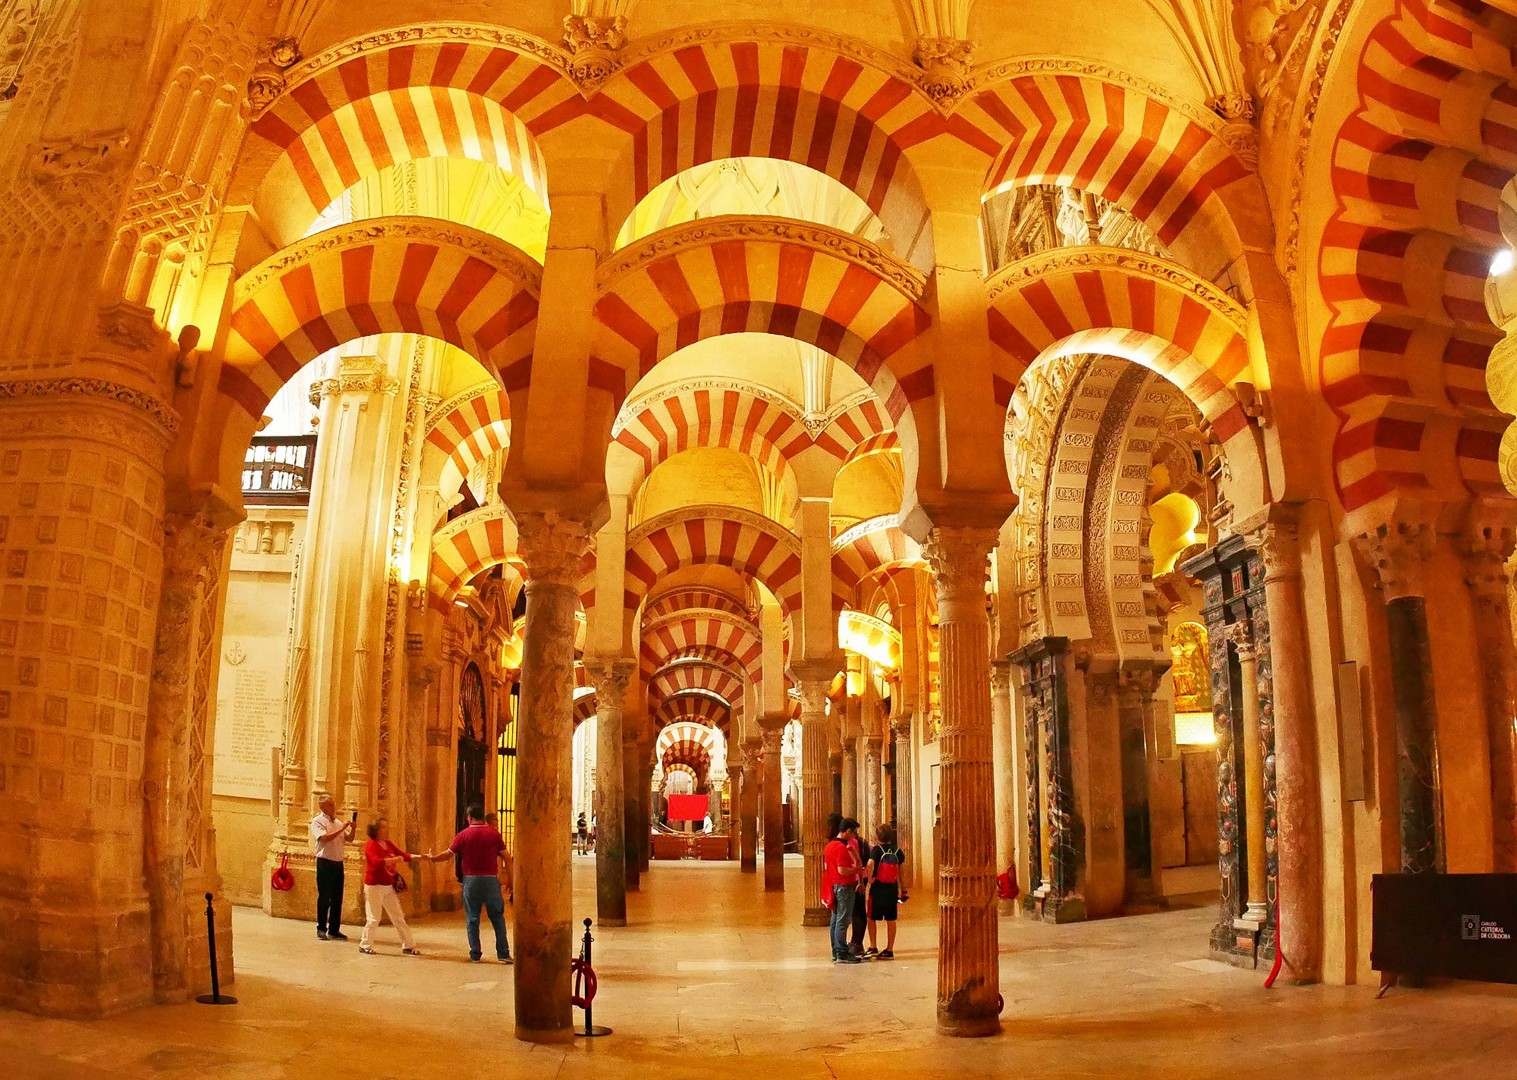 mezquita-guided-leisure-cycling-holiday-southern-spain-granada-to-seville.jpg - NEW! Spain - Basque Country to Andalucia - 21 Day - Road Cycling